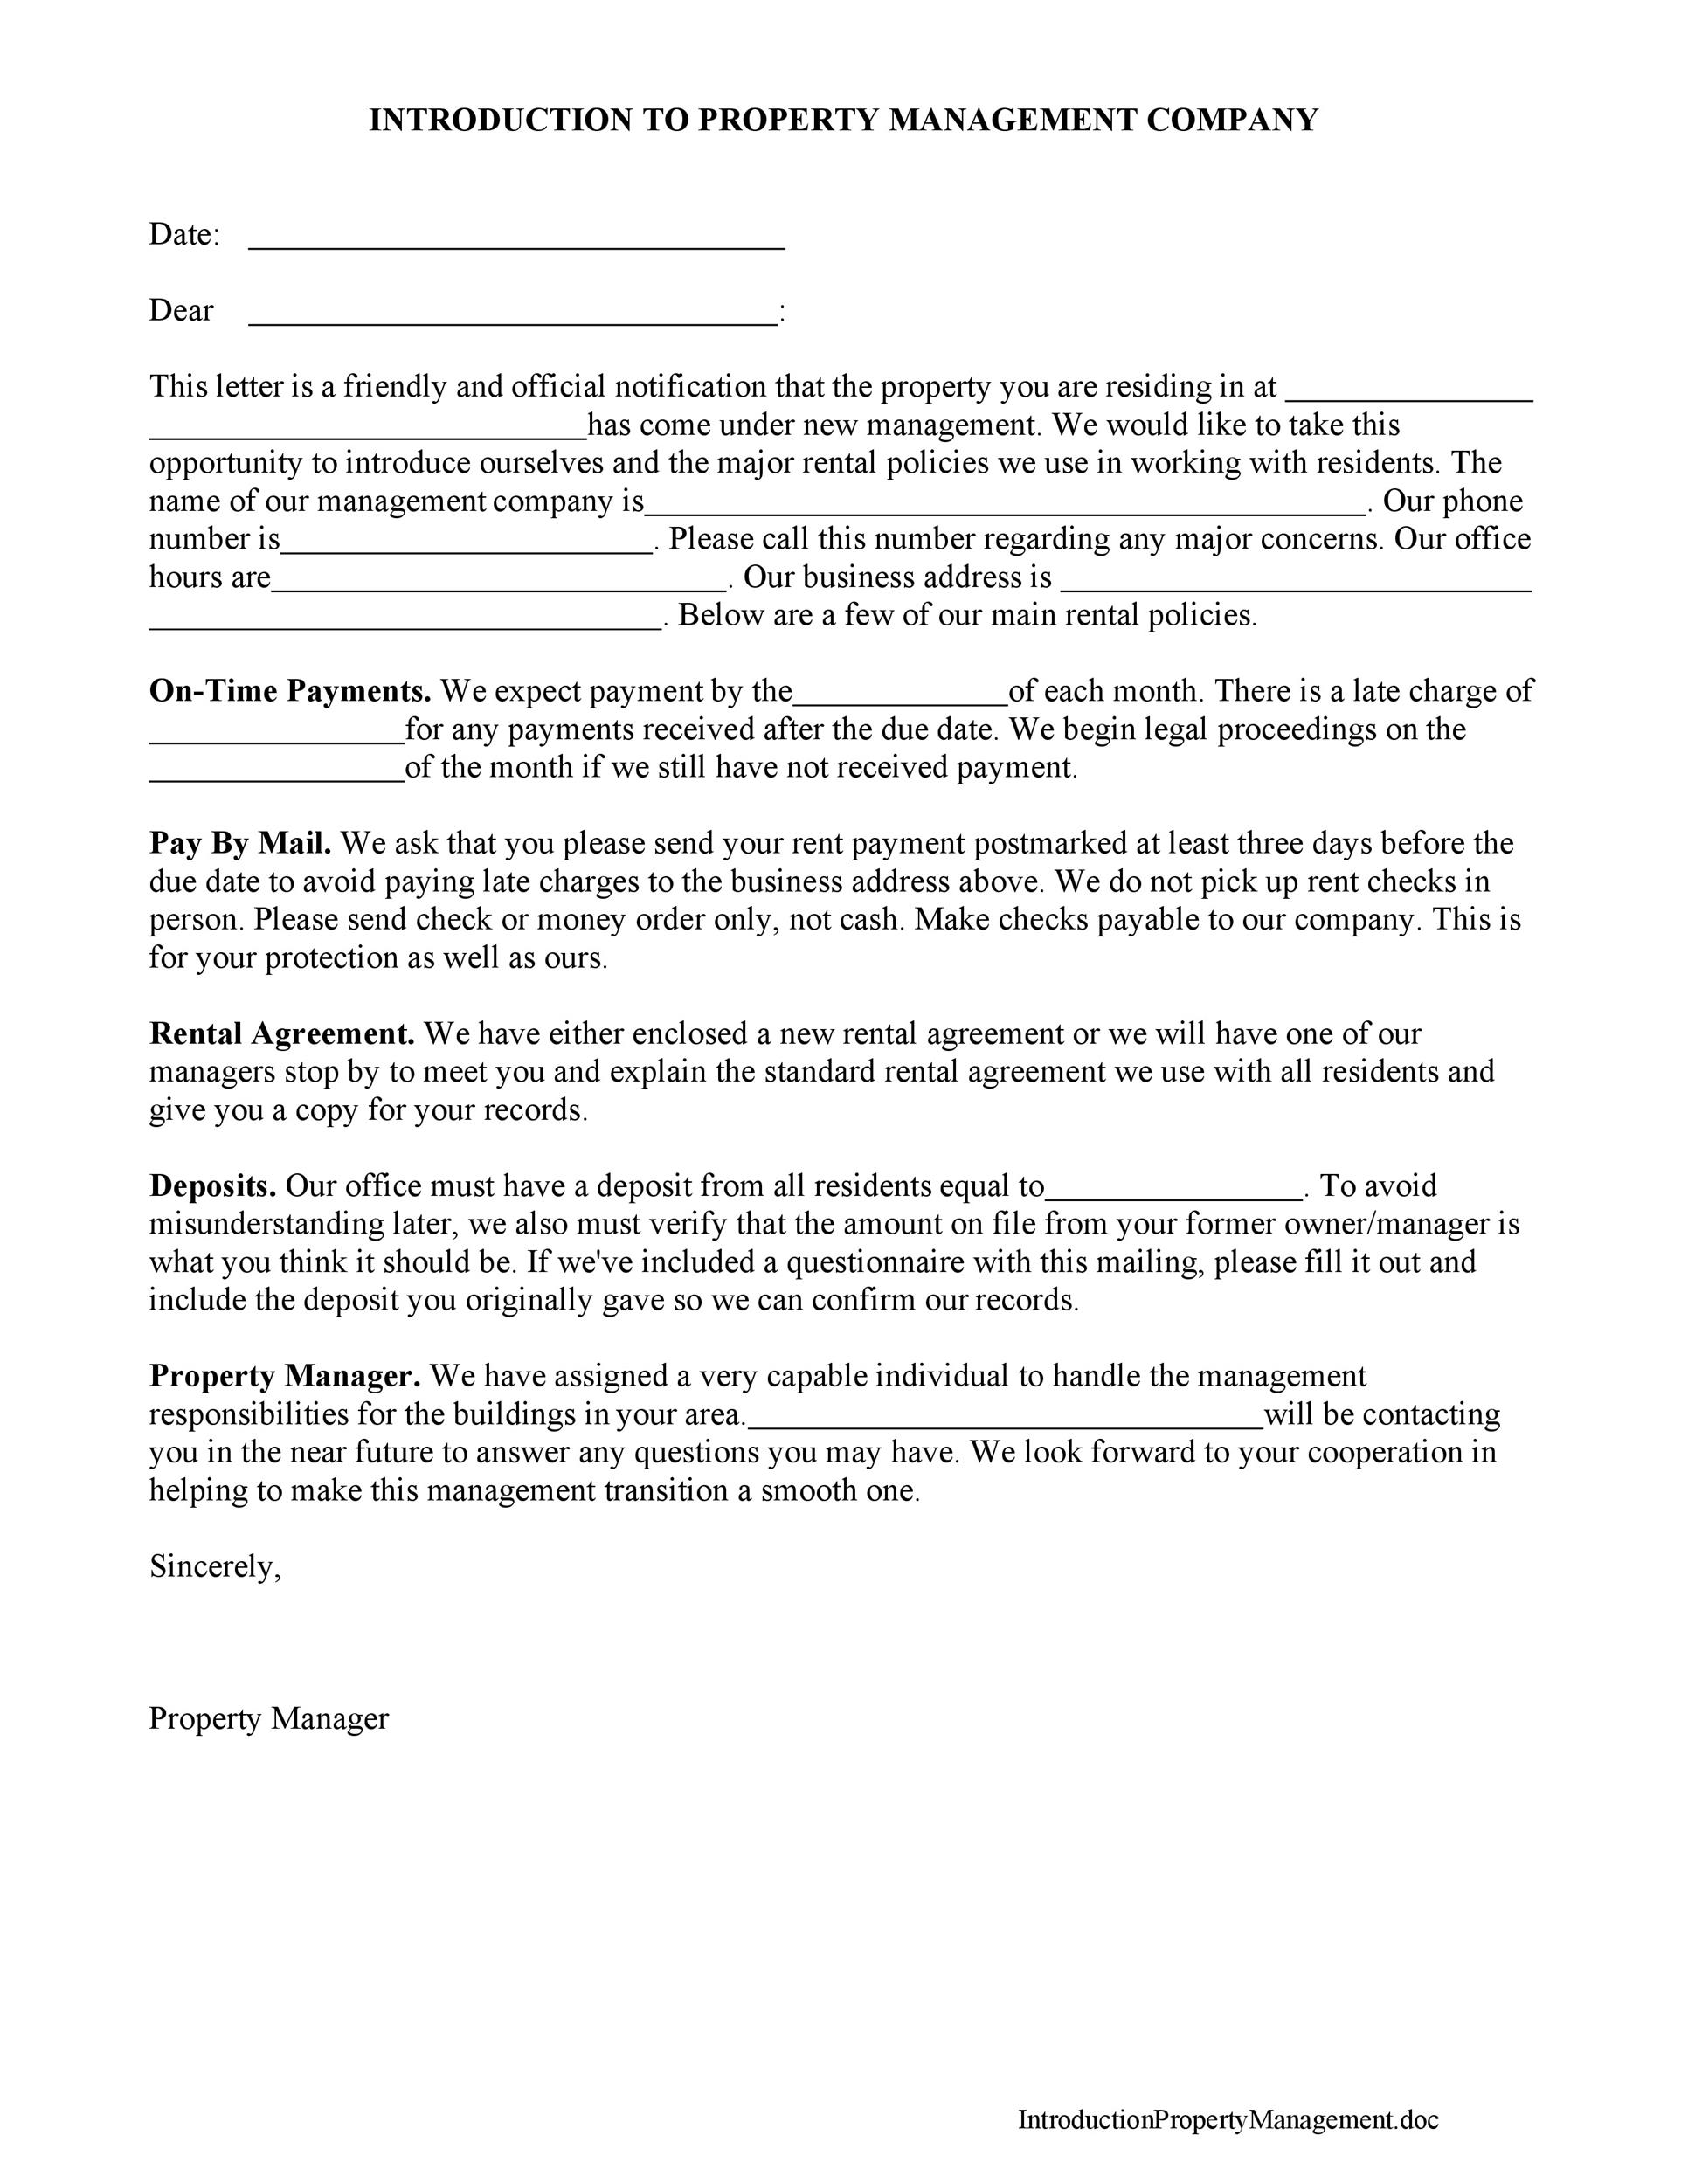 Free business introduction letter 16